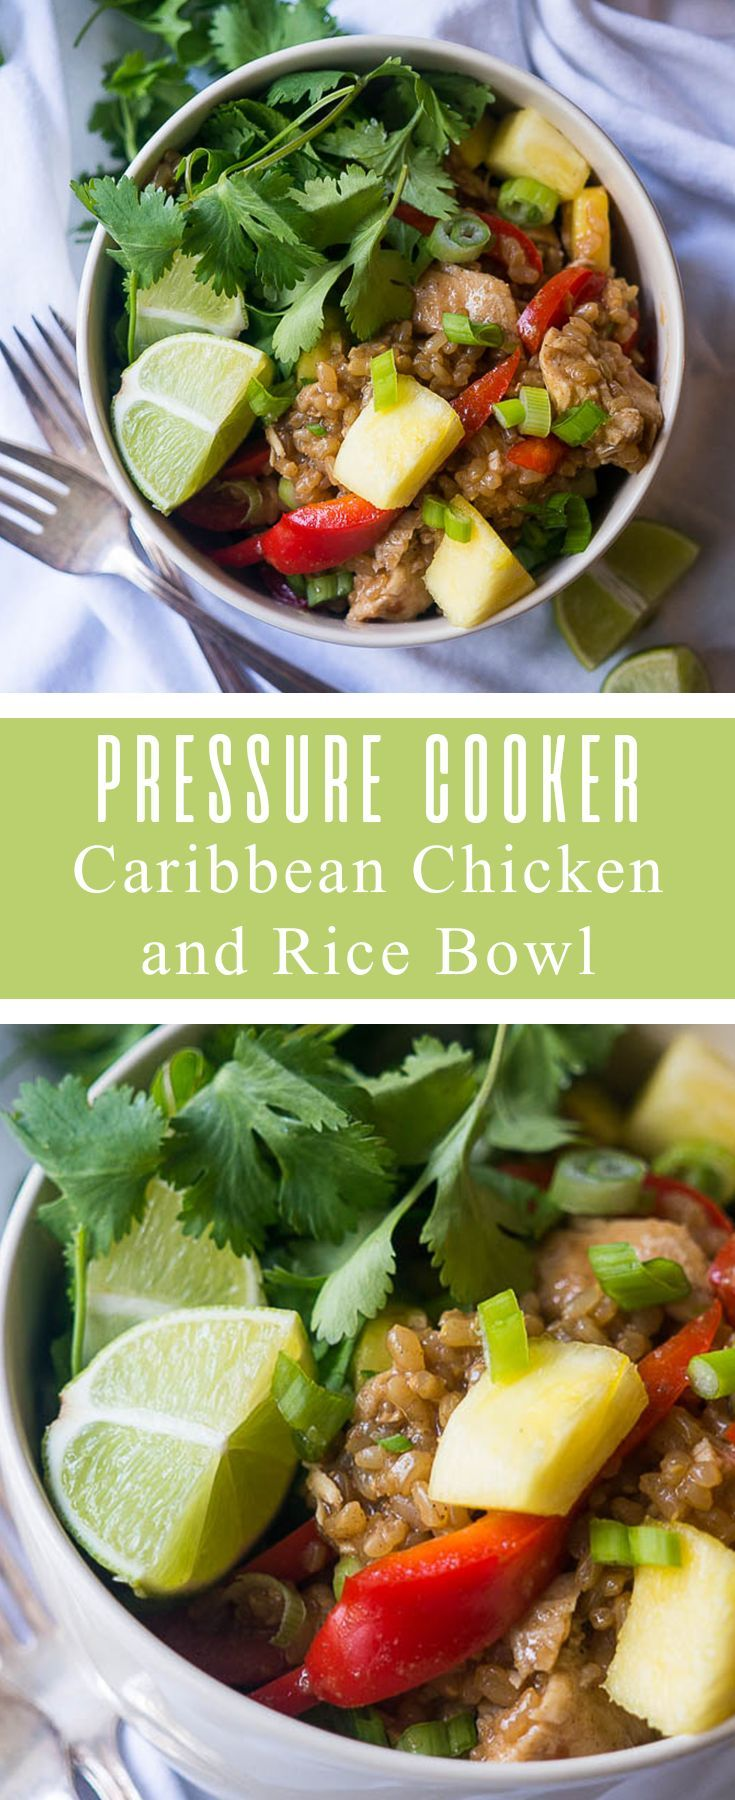 Pressure Cooker Caribbean Chicken and Rice Bowl with pineapple, red pepper, and cilantro is sweet and spicy with a taste of island life!